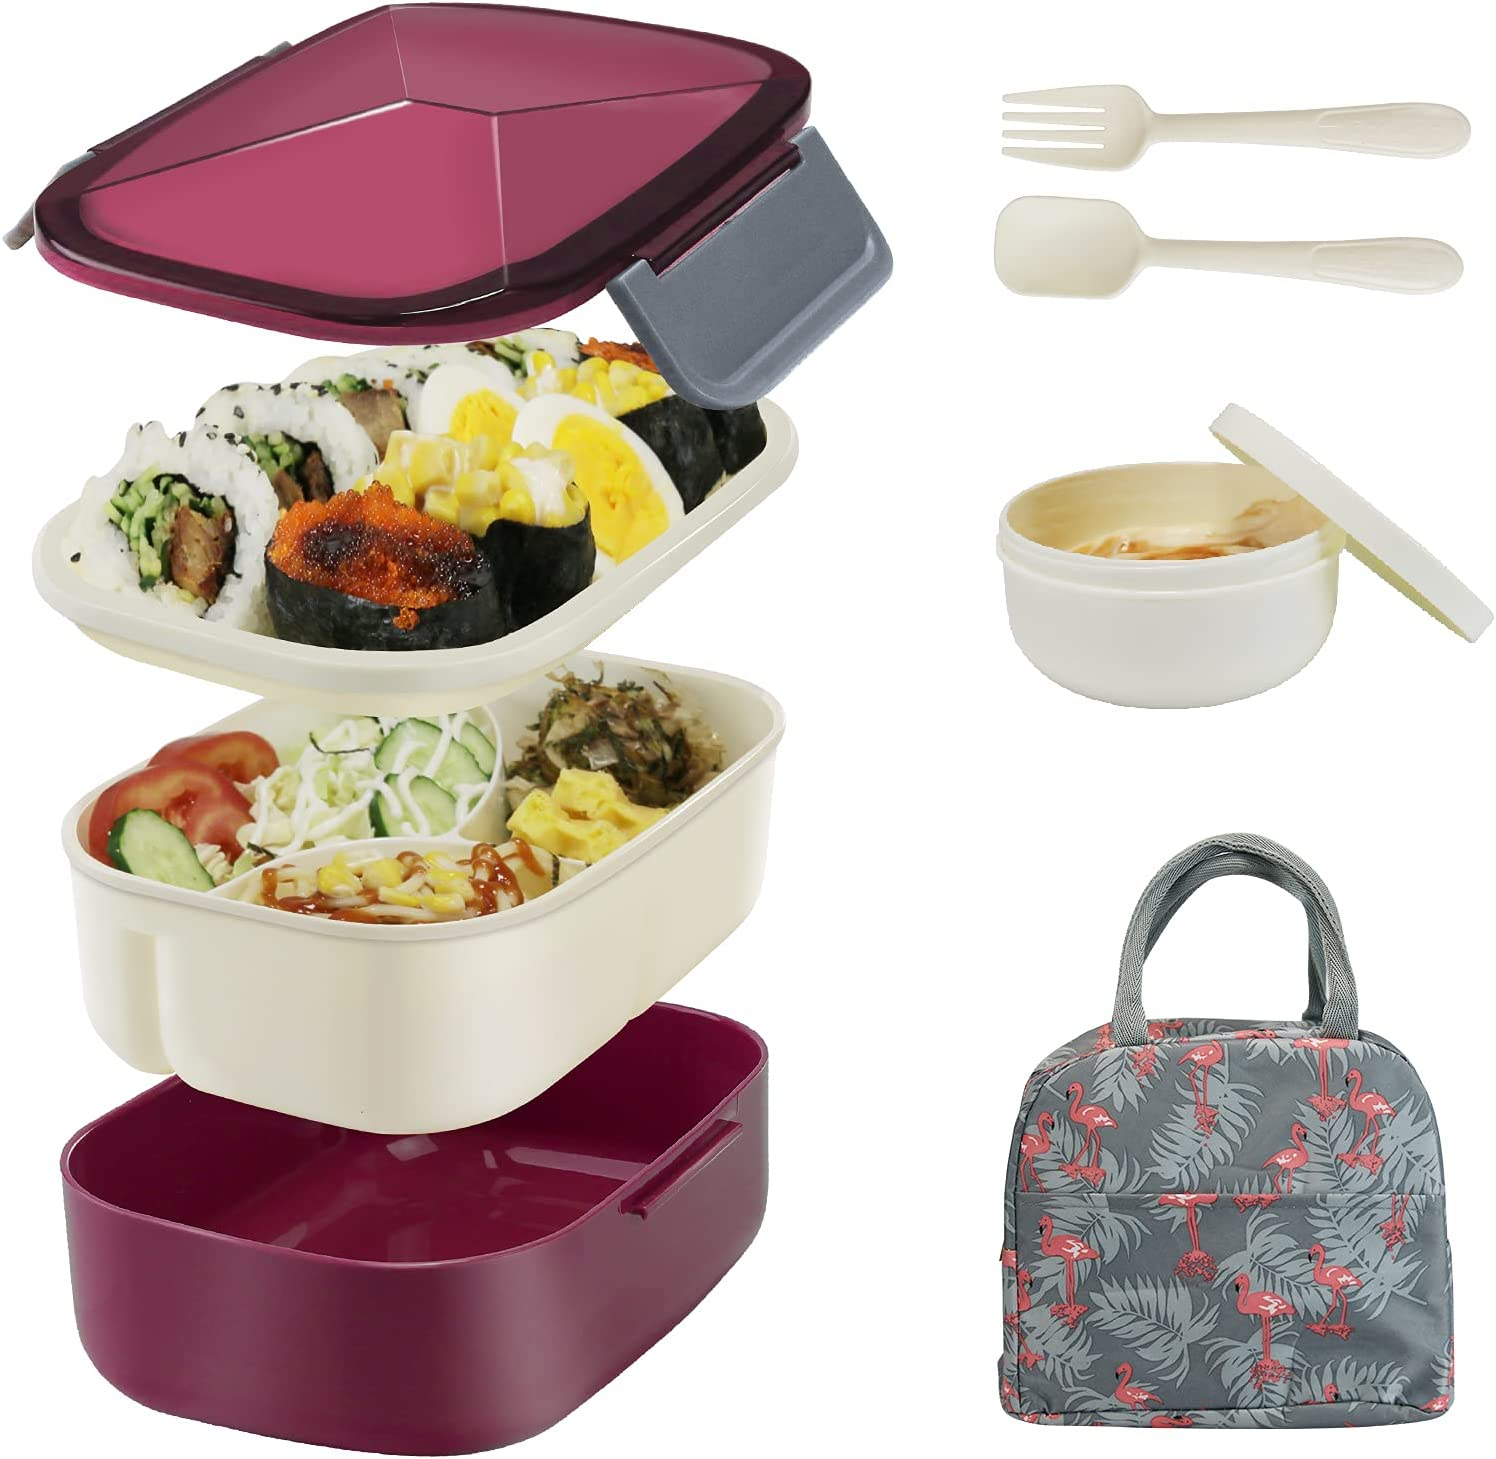 Bestjing Bento Lunch box for Adults, 54.1oz BPA Free Bento Box, 2 Tier &3 Compartment Design Food Containers for Lunch &Snacks, Built-in Utensil &Sauce Cup, Bundled with Insulated Lunch Bag (Dark Red)